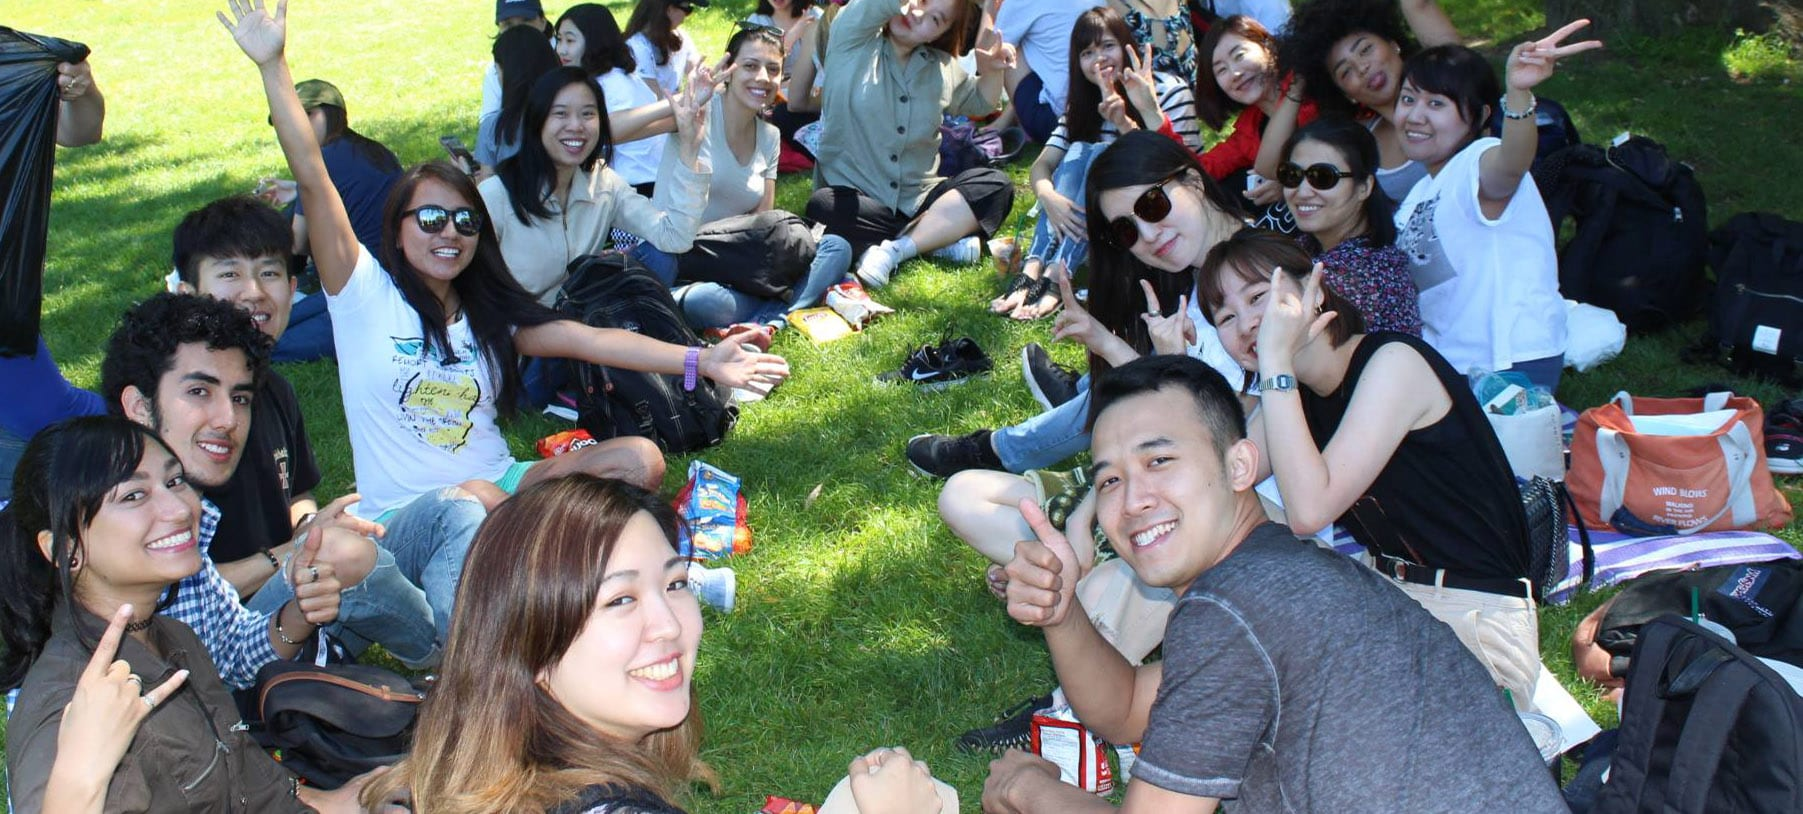 Vancouver ESL students enjoy party in park